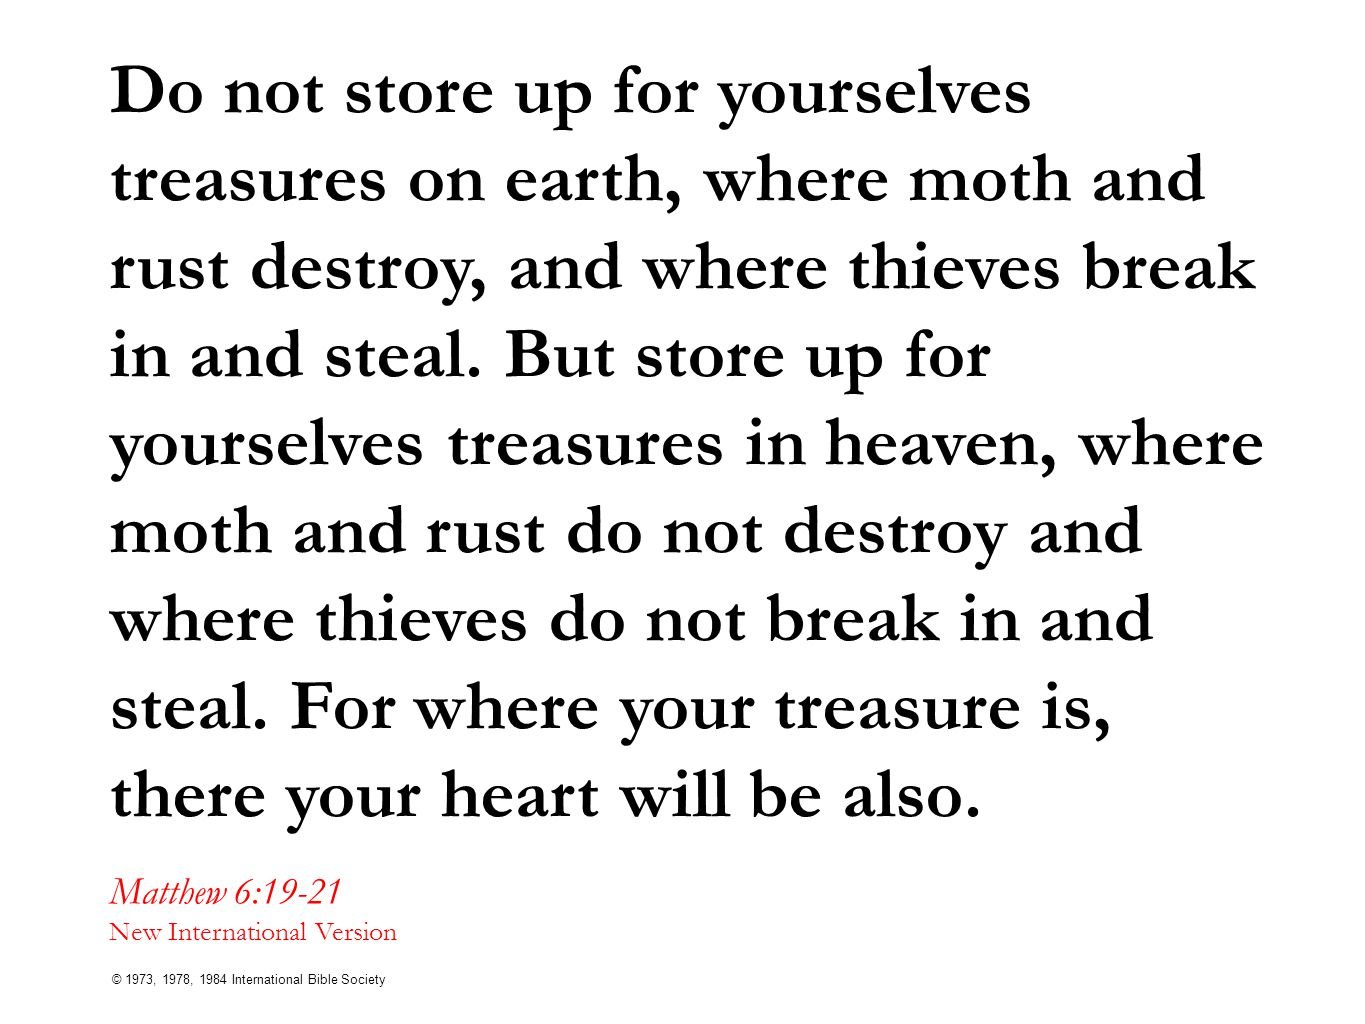 Do not store up for yourselves treasures on earth, where moth and rust destroy, and where thieves break in and steal.